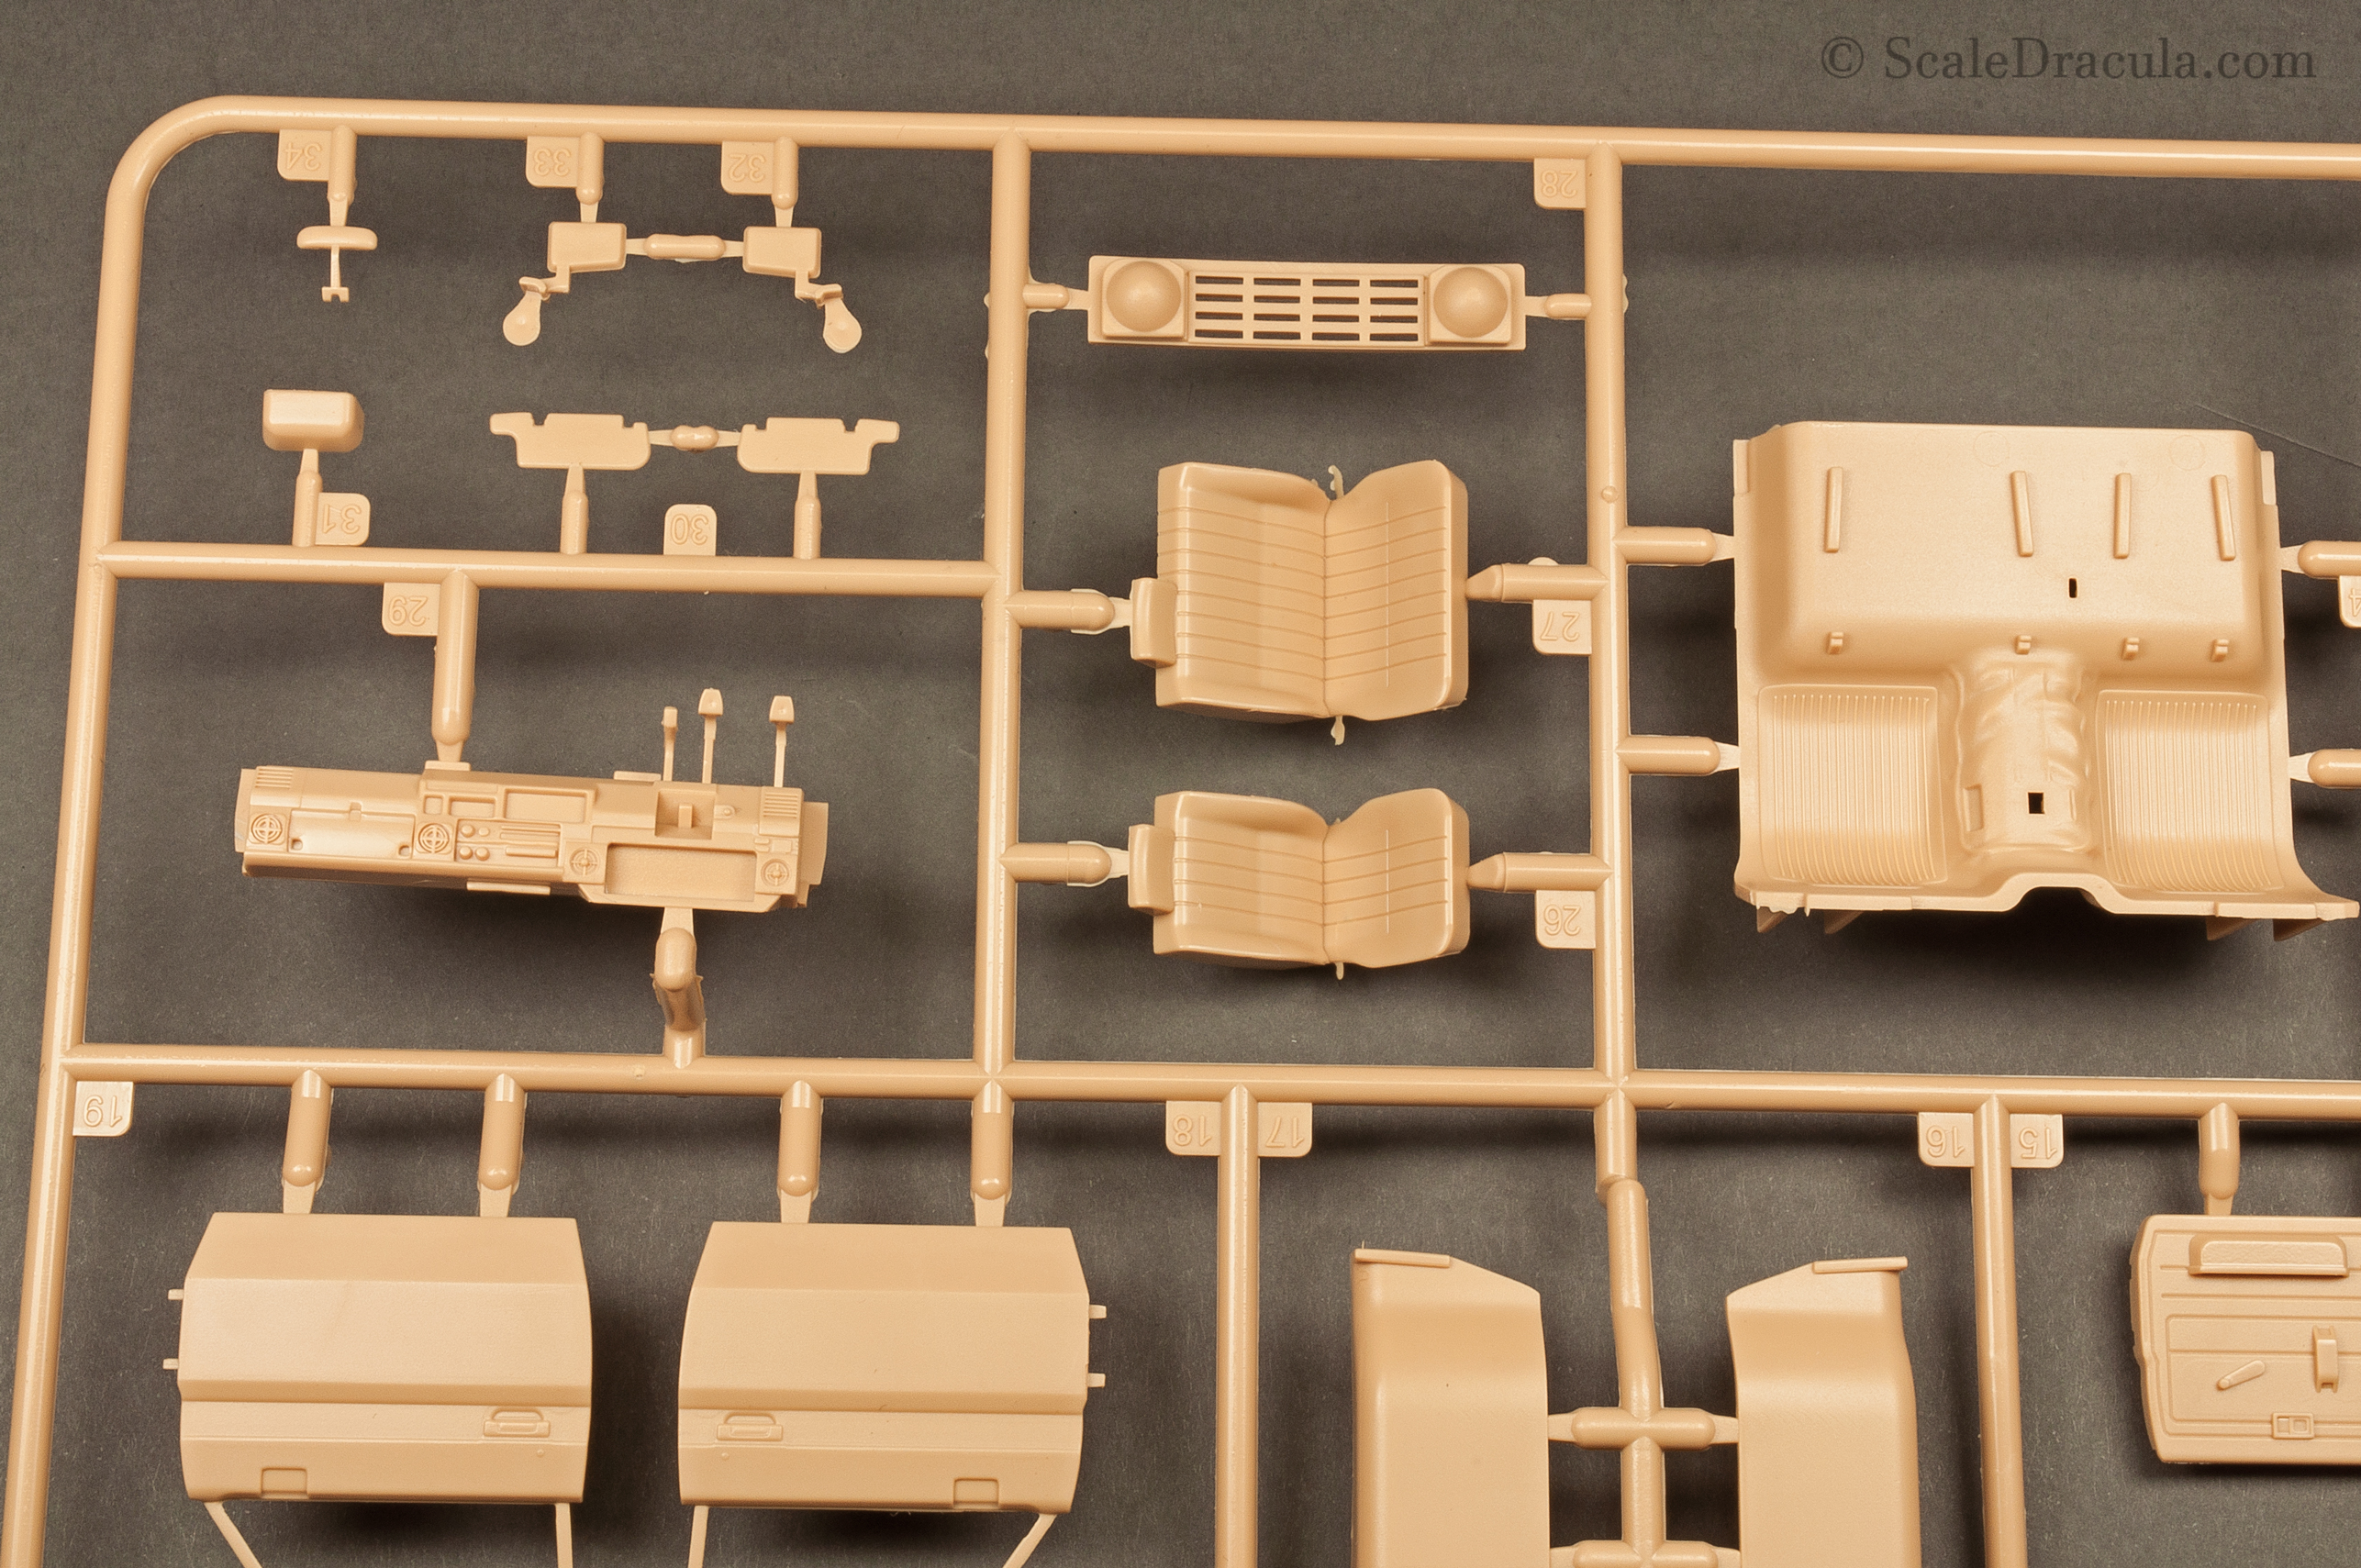 Toyota Land Cruiser Technical by MENG